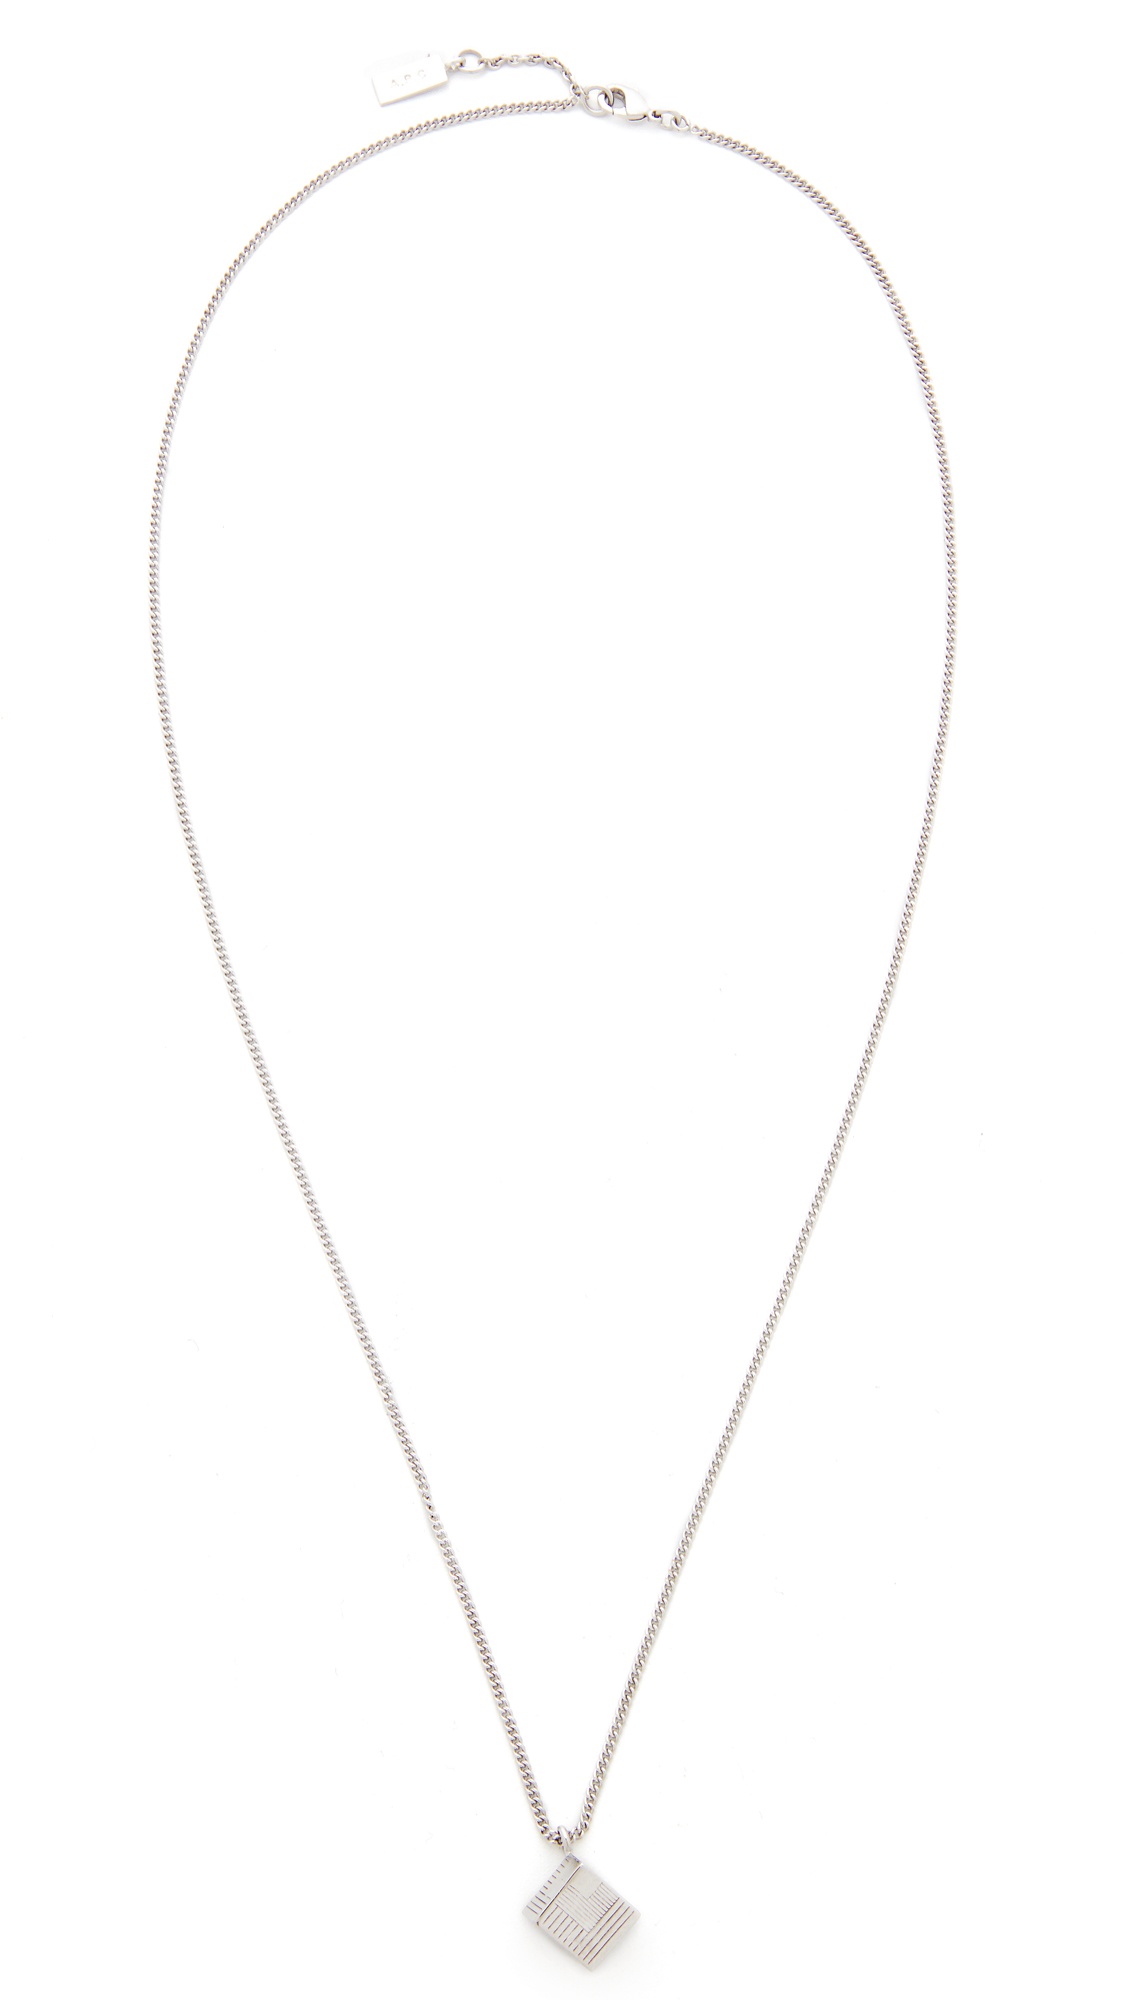 c a product catalog necklace apc p mael previous gold